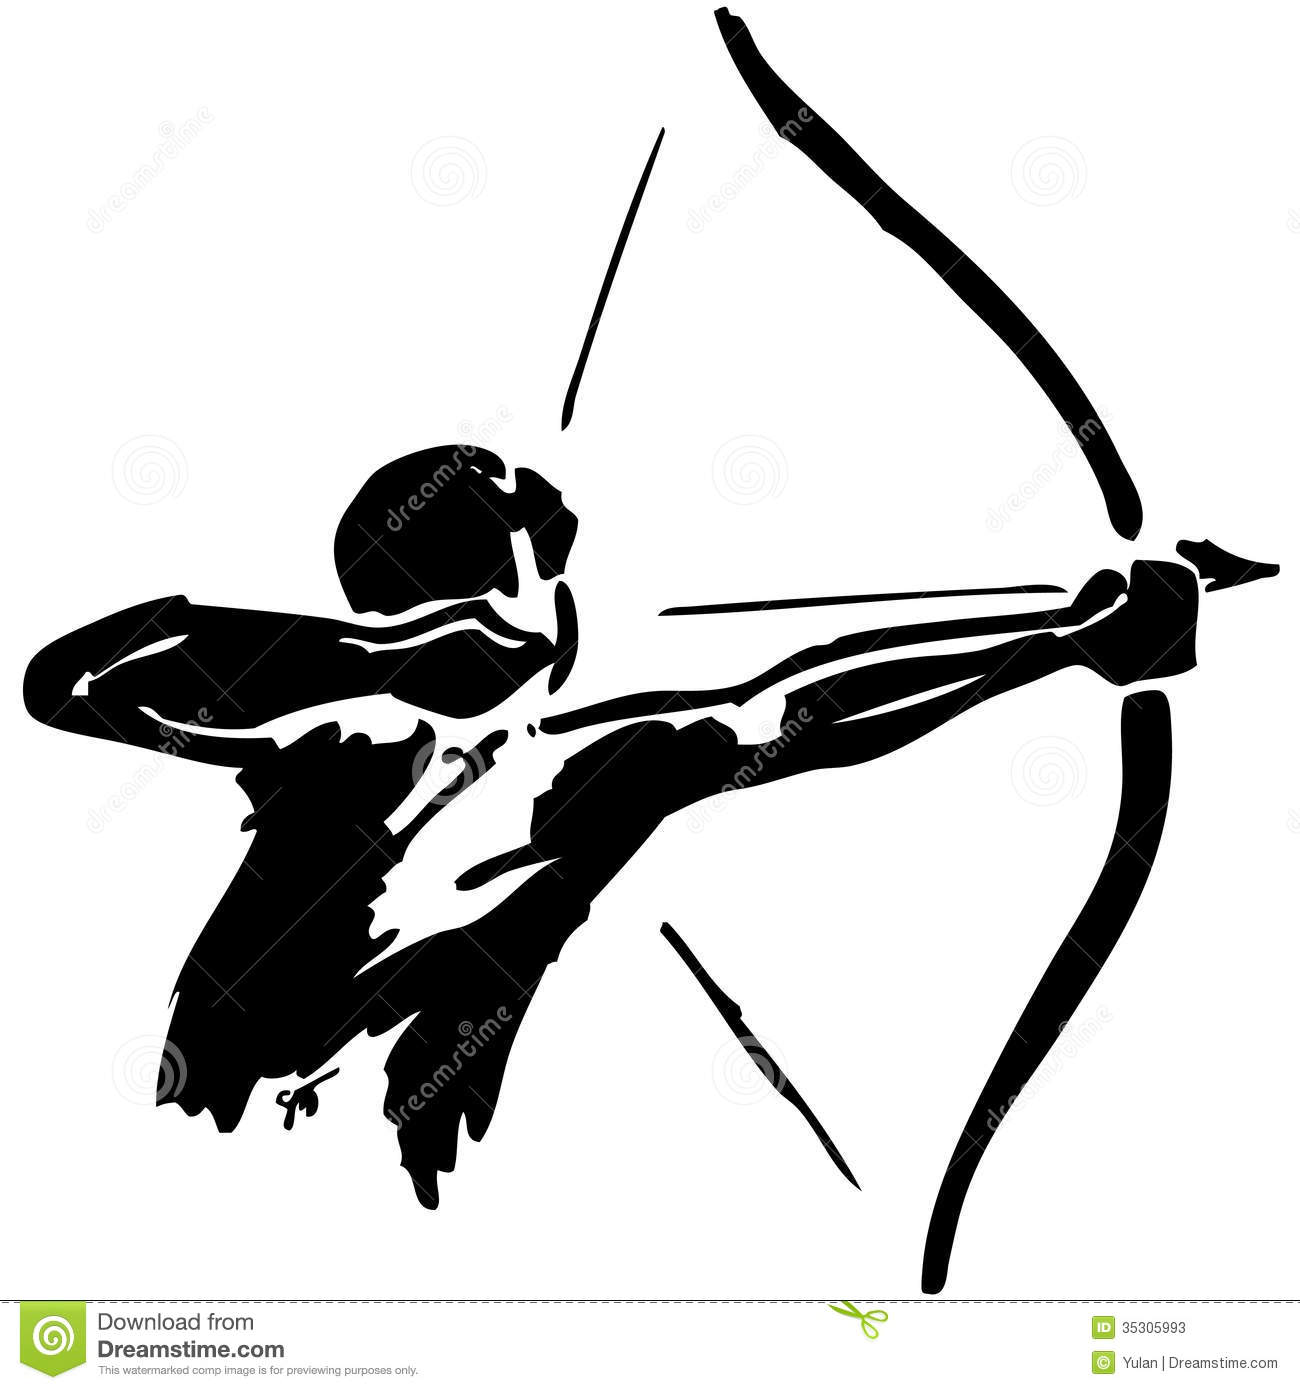 Man Practices Archery Stock Photos - Image: 35305993: www.dreamstime.com/stock-photos-man-practices-archery-white...